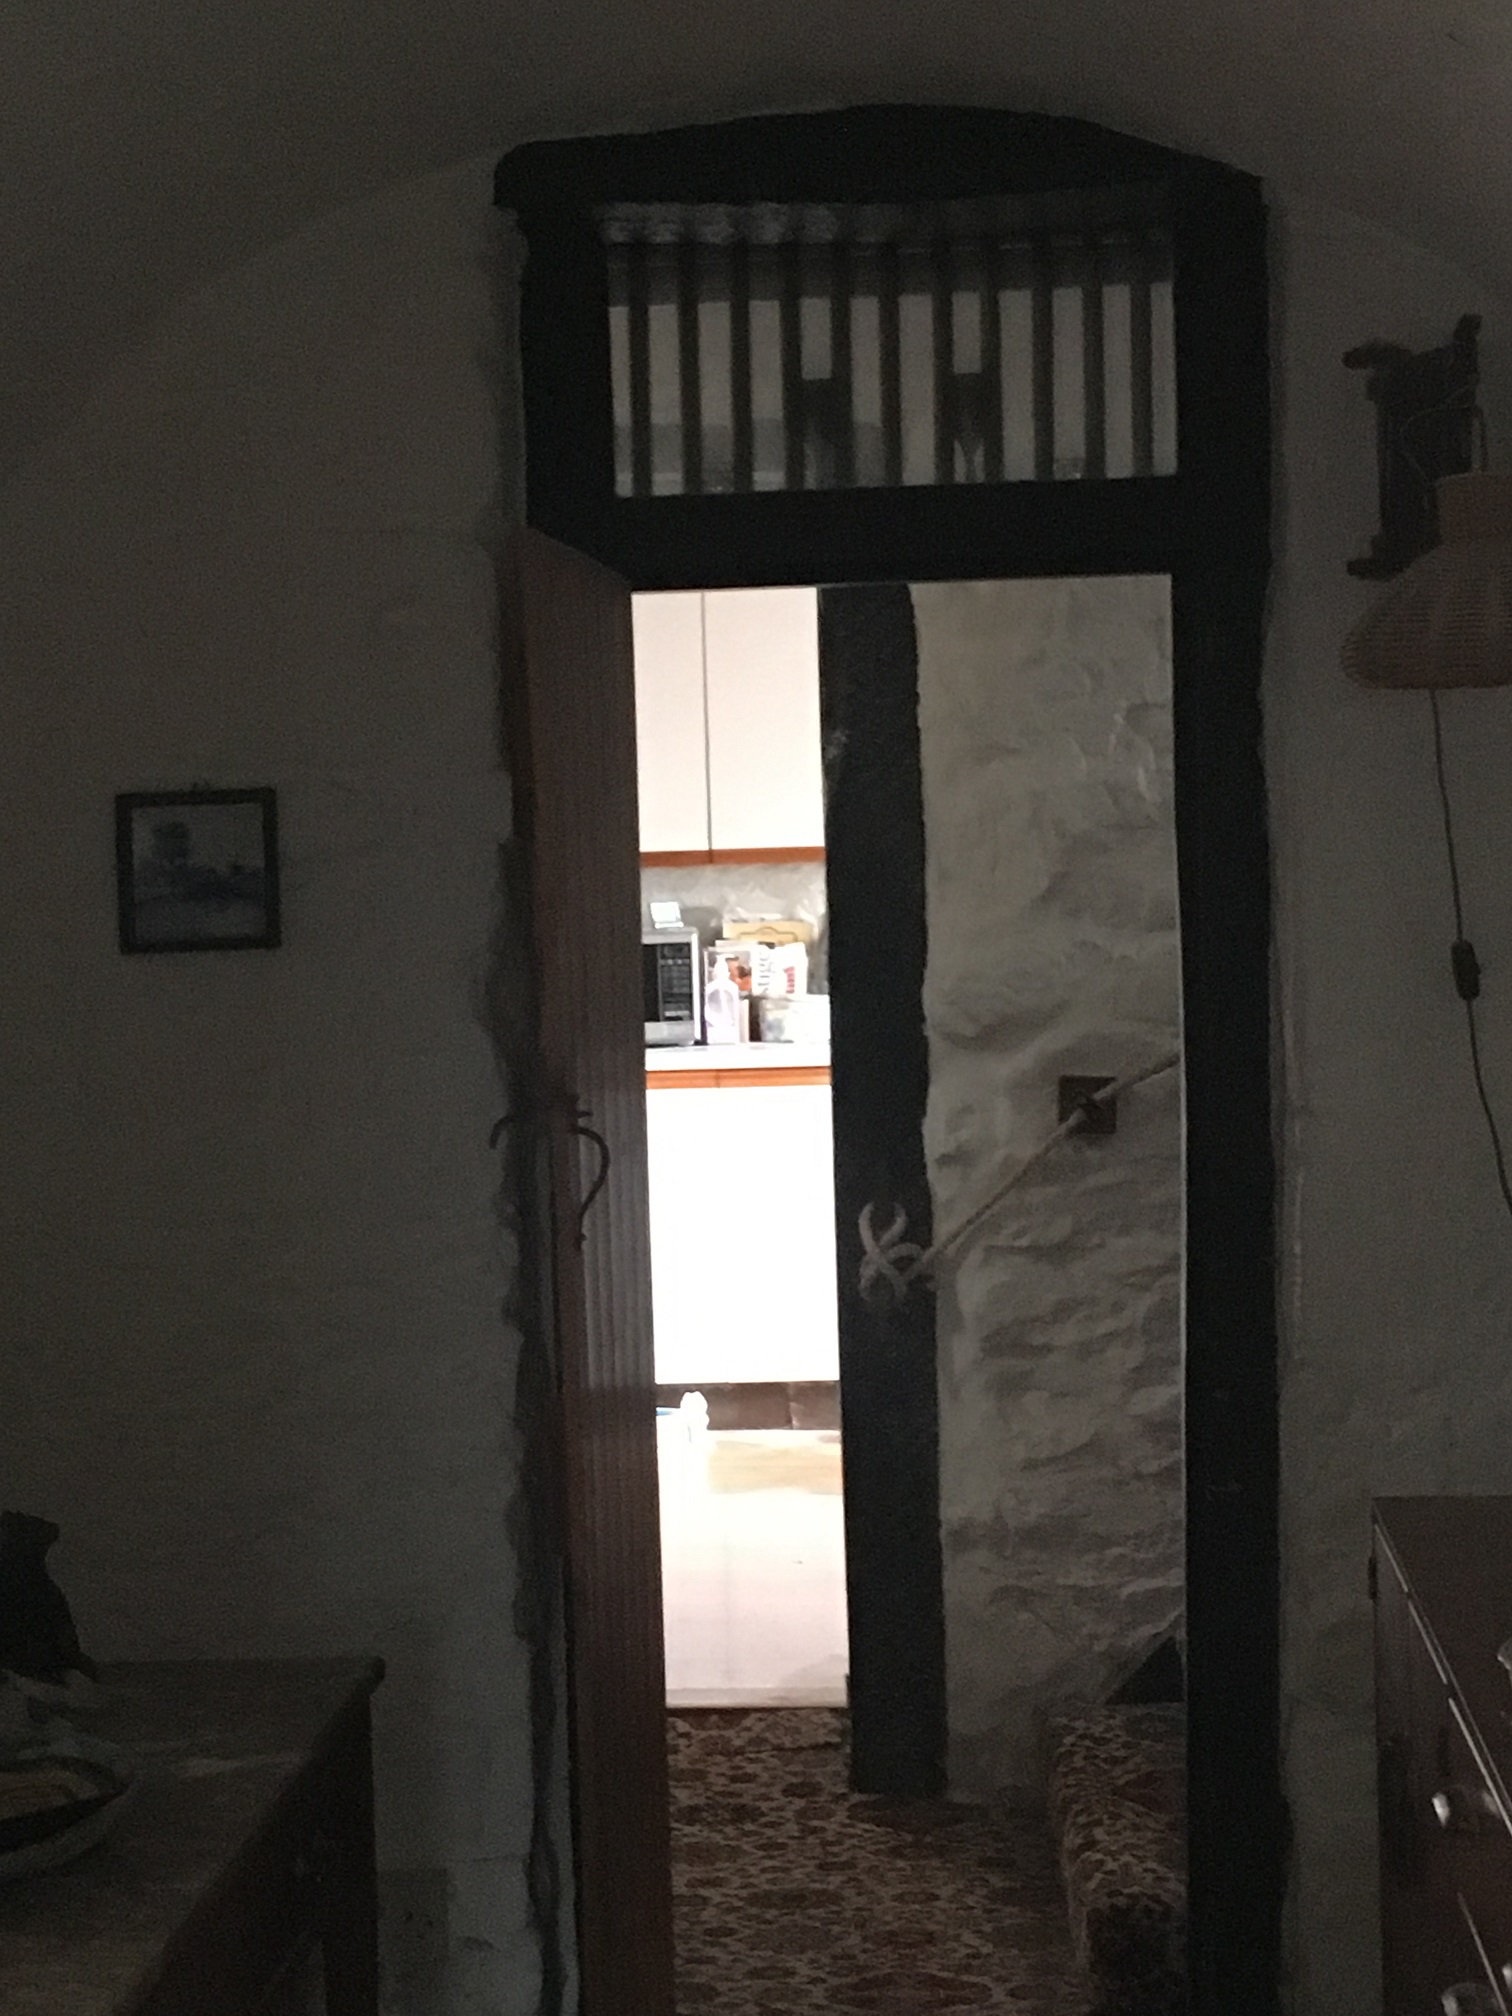 Second original cell, now serving as an ante-room between sitting room and kitchen